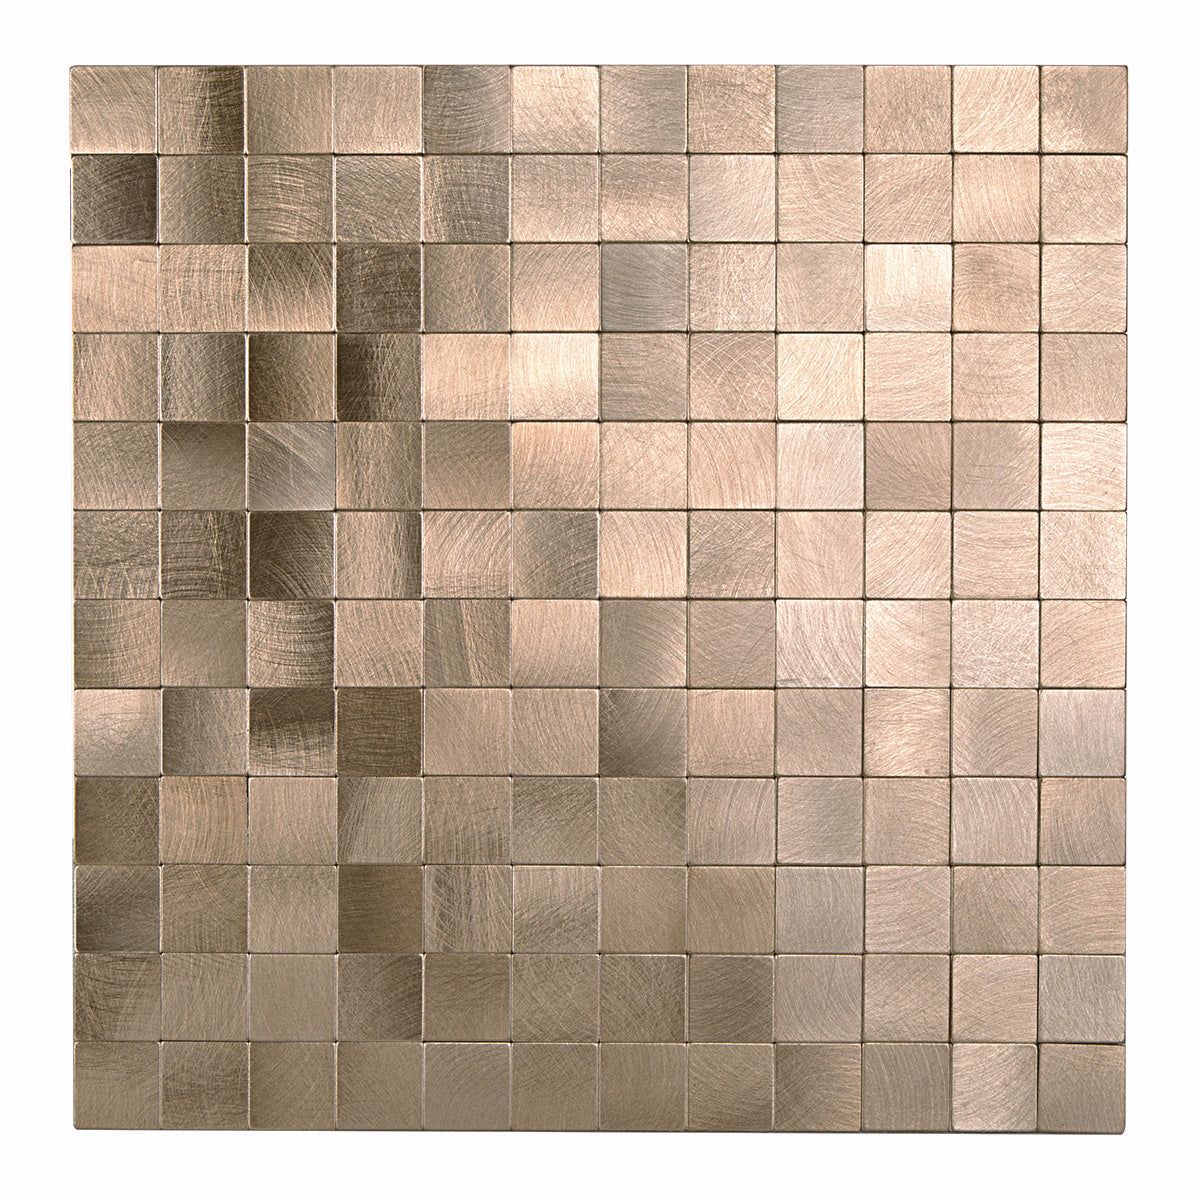 - Decopus Metal Tile Peel And Stick Backsplash (MS25 Copper Matte